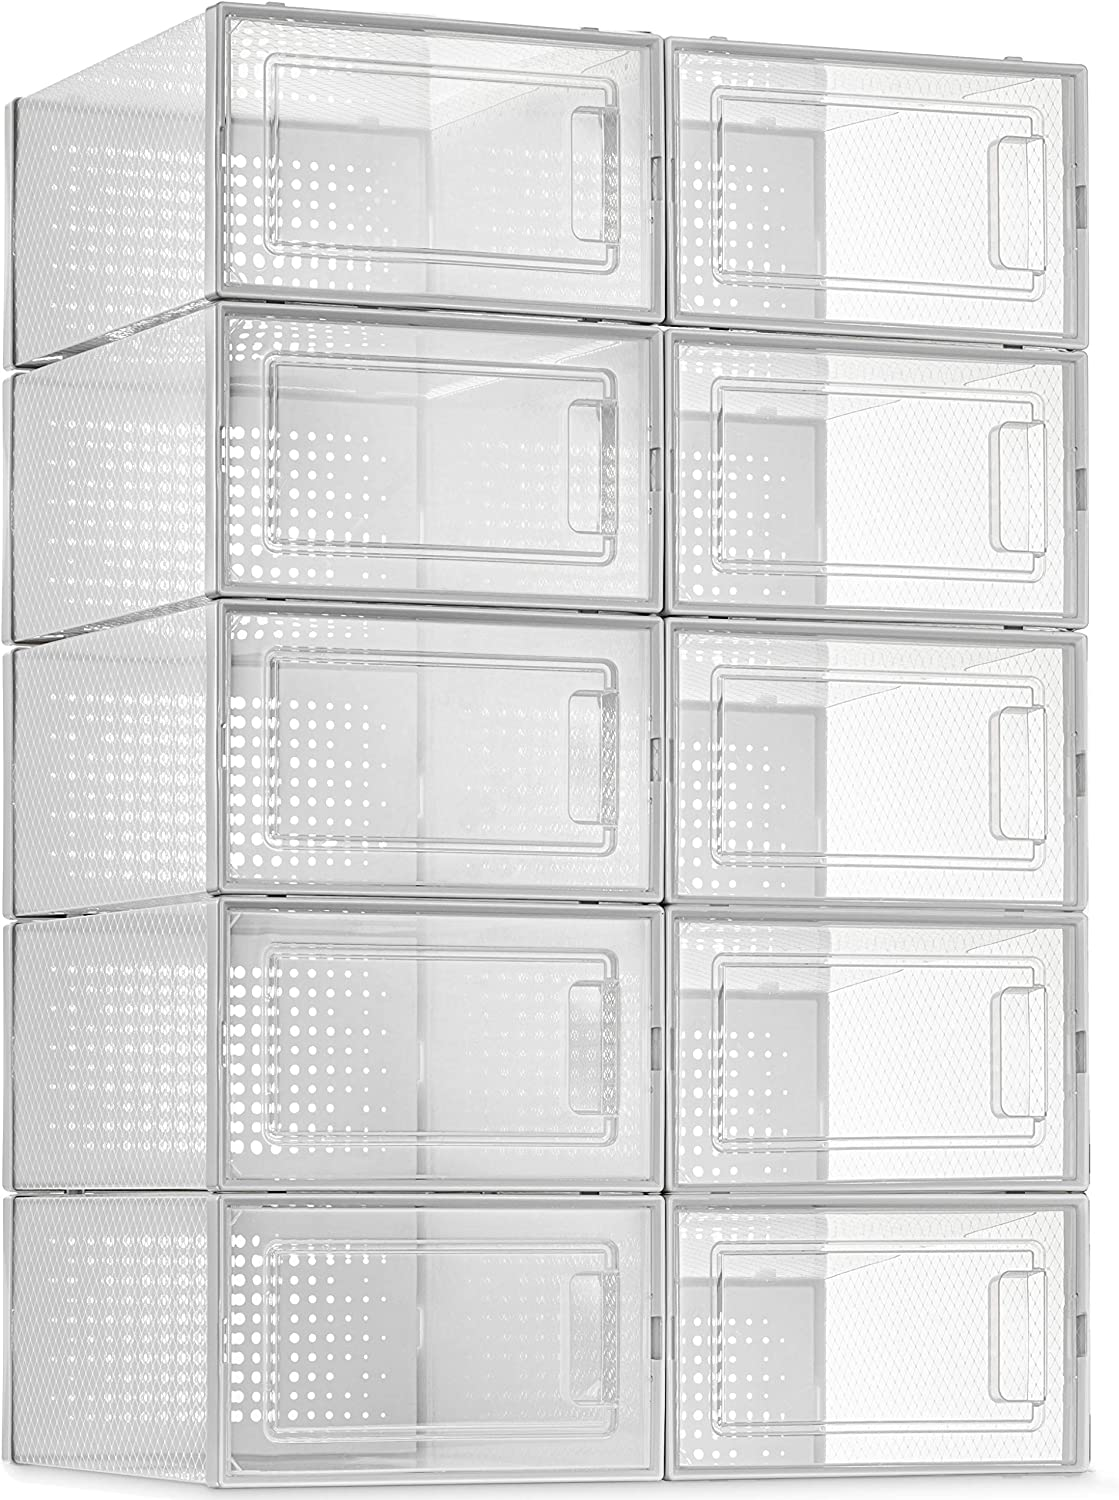 10 Pack Shoe Storage Boxes, Clear Plastic Stackable Shoe Organizer Bins, Drawer Type Front Opening Sneaker Shoe Holder Containers